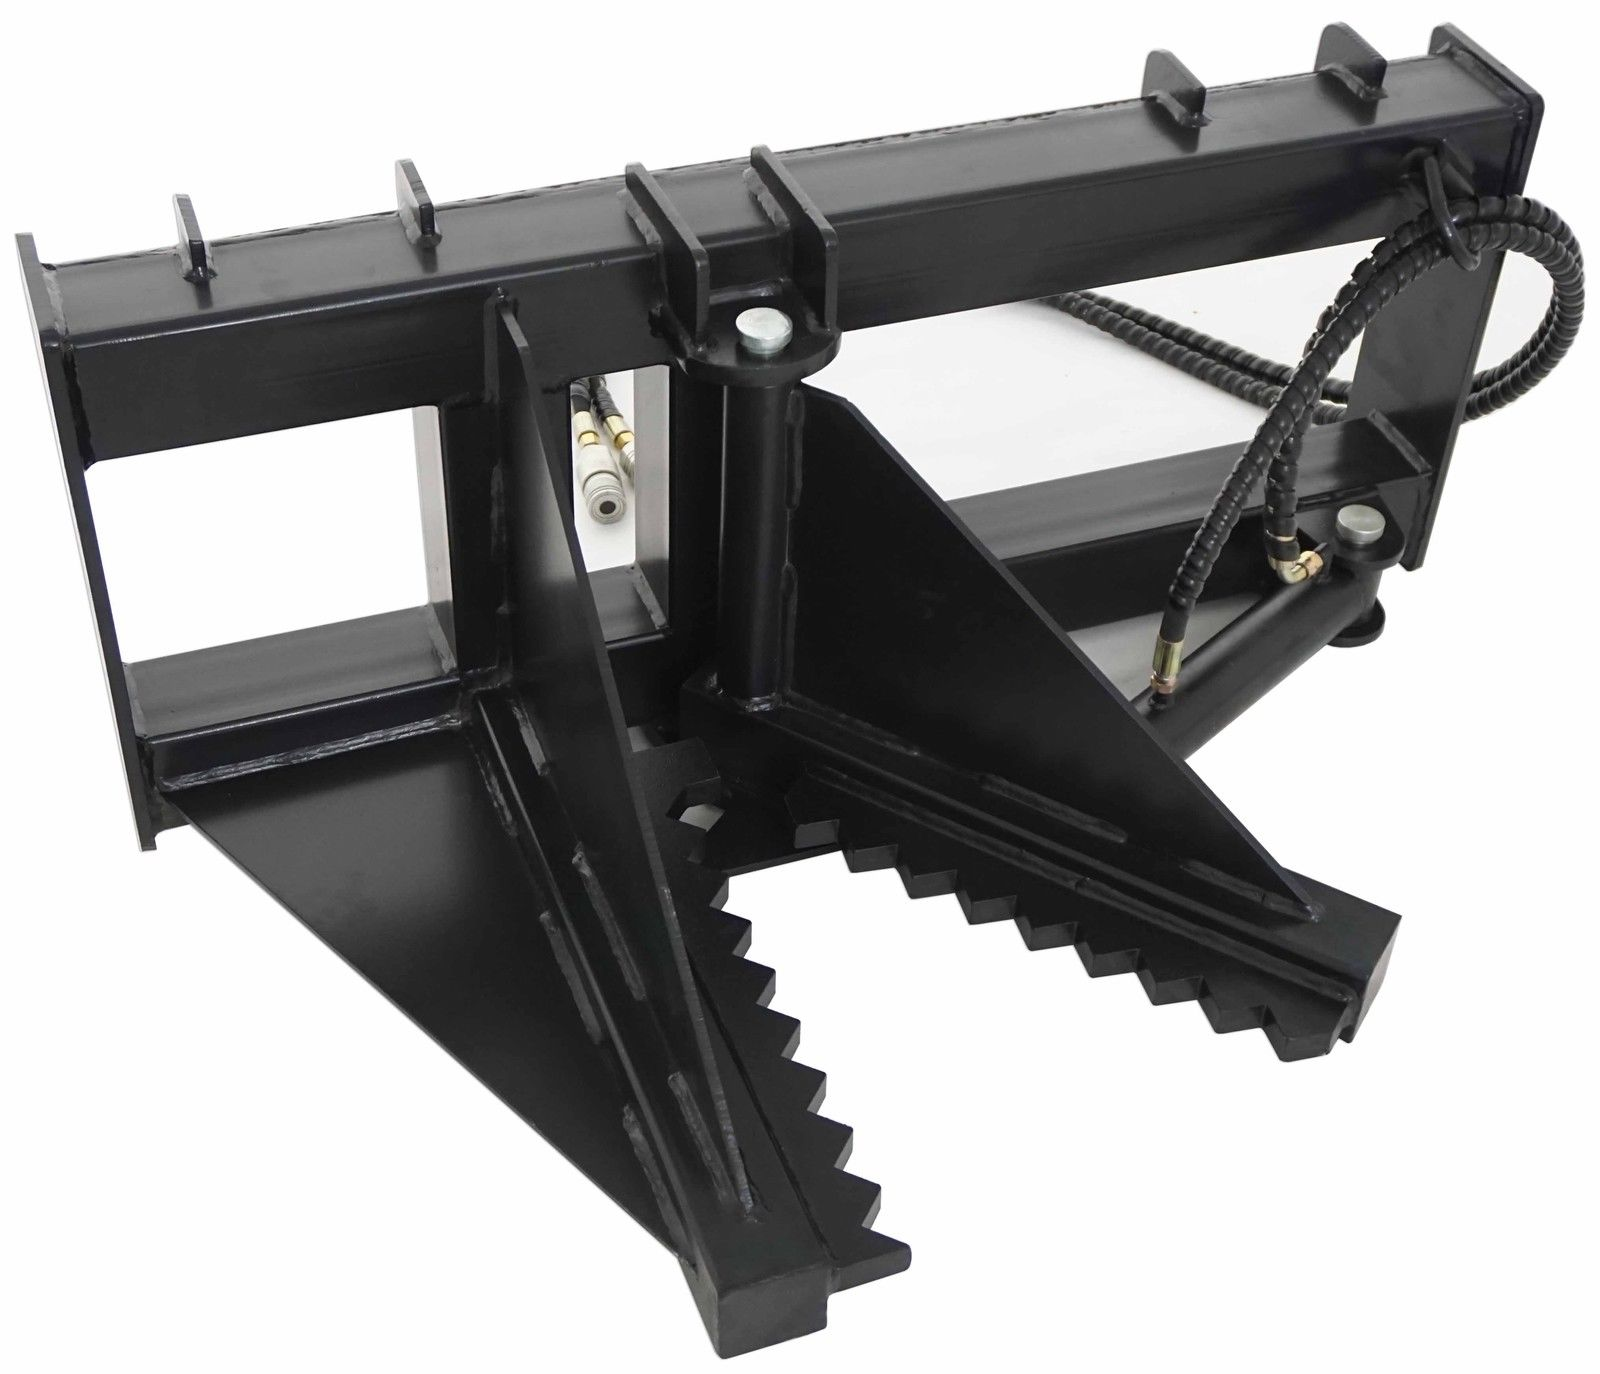 New Tree Amp Fence Post Puller Skid Steer Attachment Quick